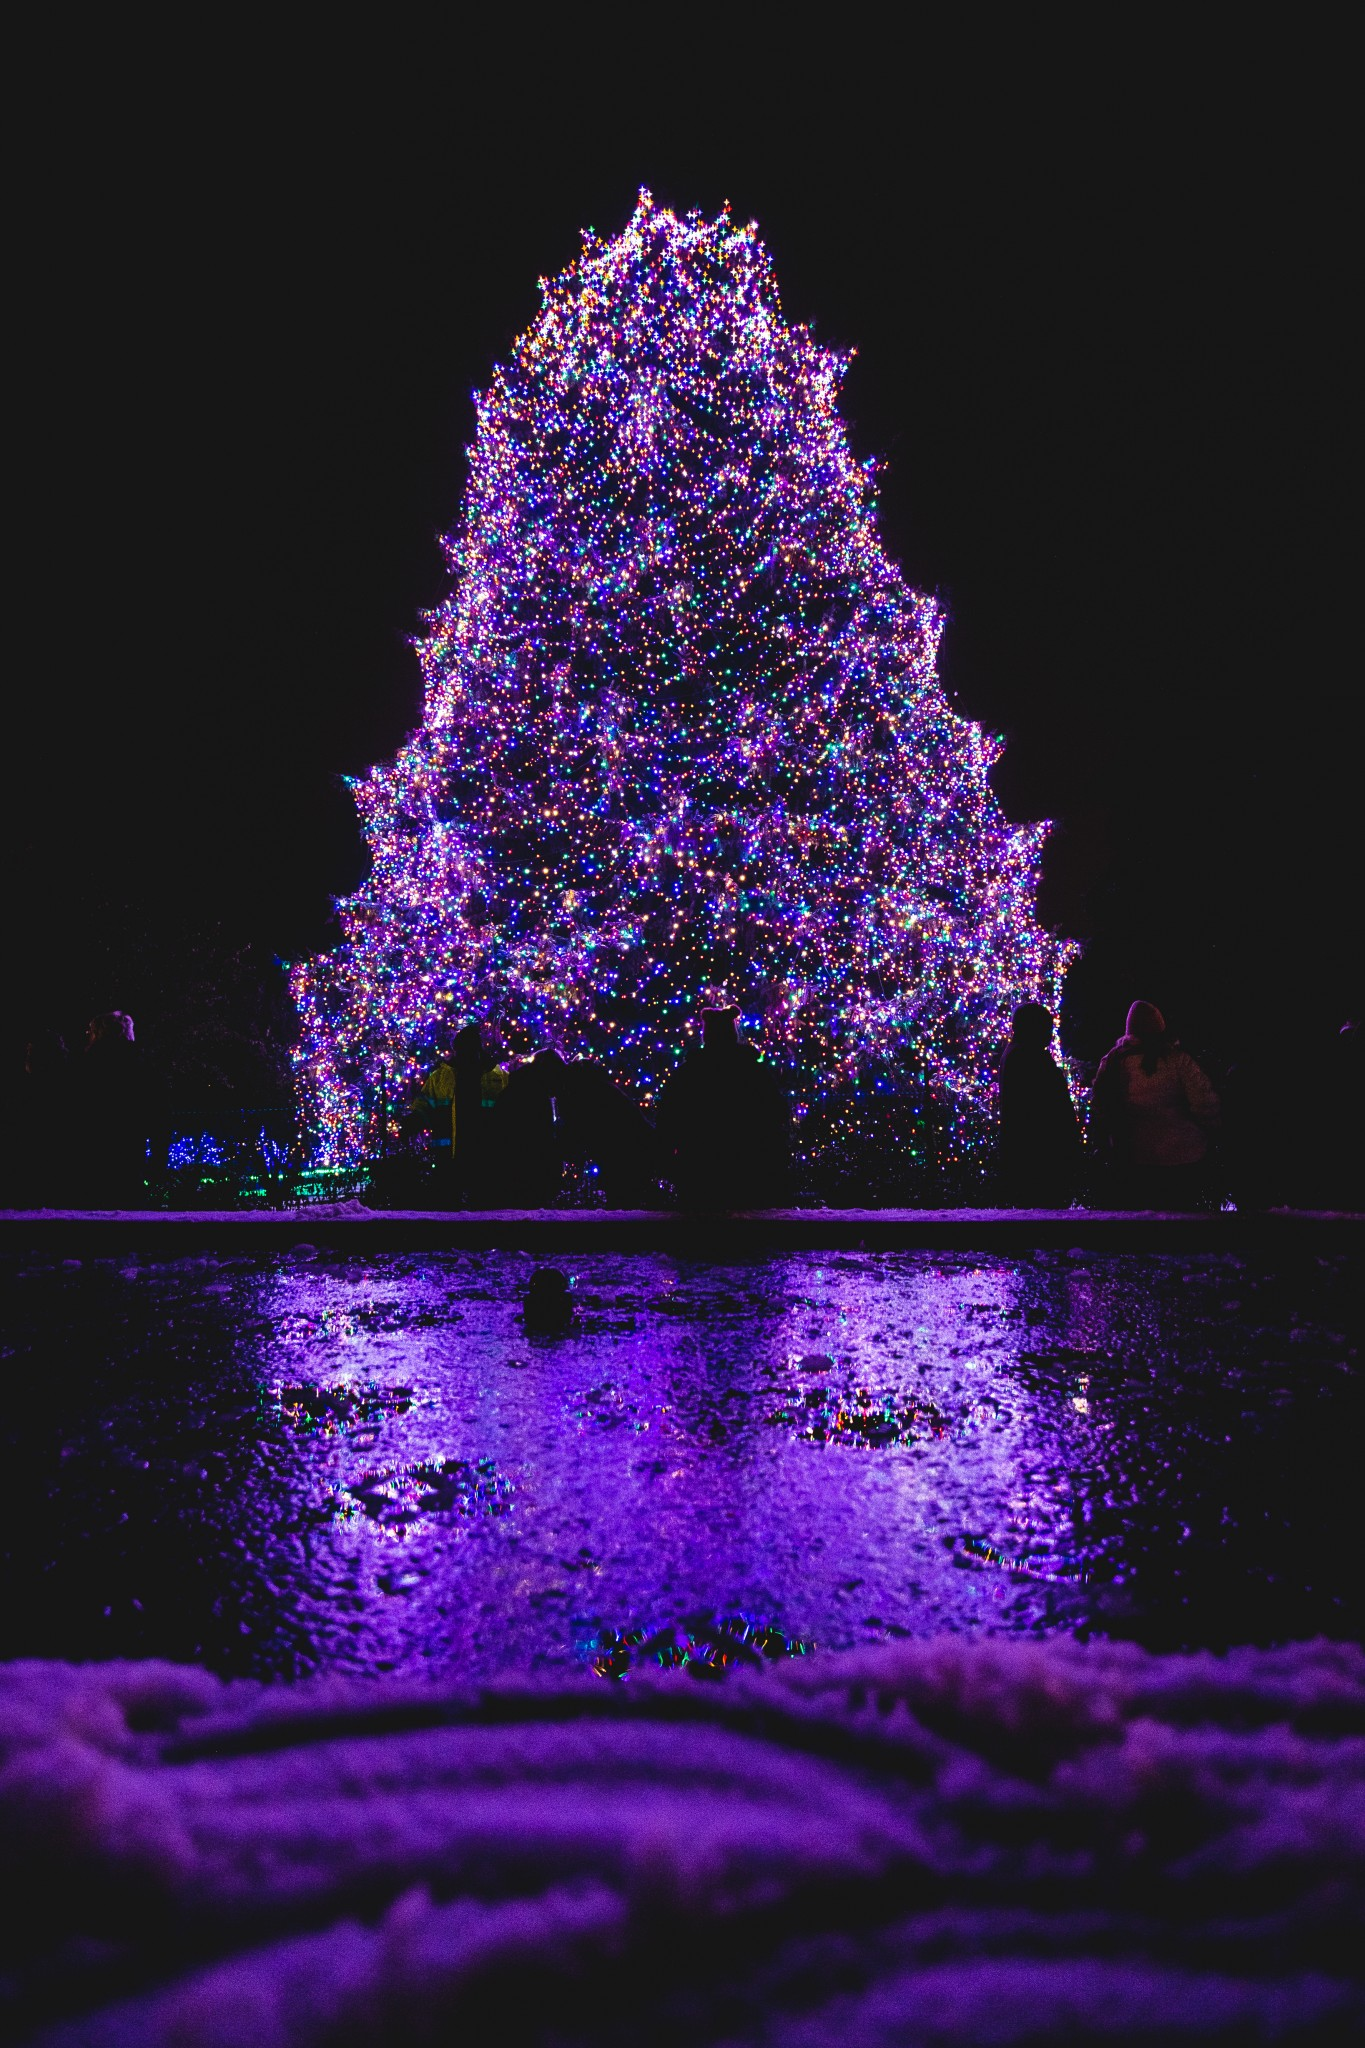 The Toledo Zoo's annual Lights Before Christmas will kick off Nov. 22 with a lighting ceremony for the Big Tree – an 85-foot Norway spruce decorated with 35,000 LED lights. The five-week long display, presented by KeyBank, features more than one million lights, more than 200 illuminated animal images and much more. (Photo courtesy of The Toledo Zoo)